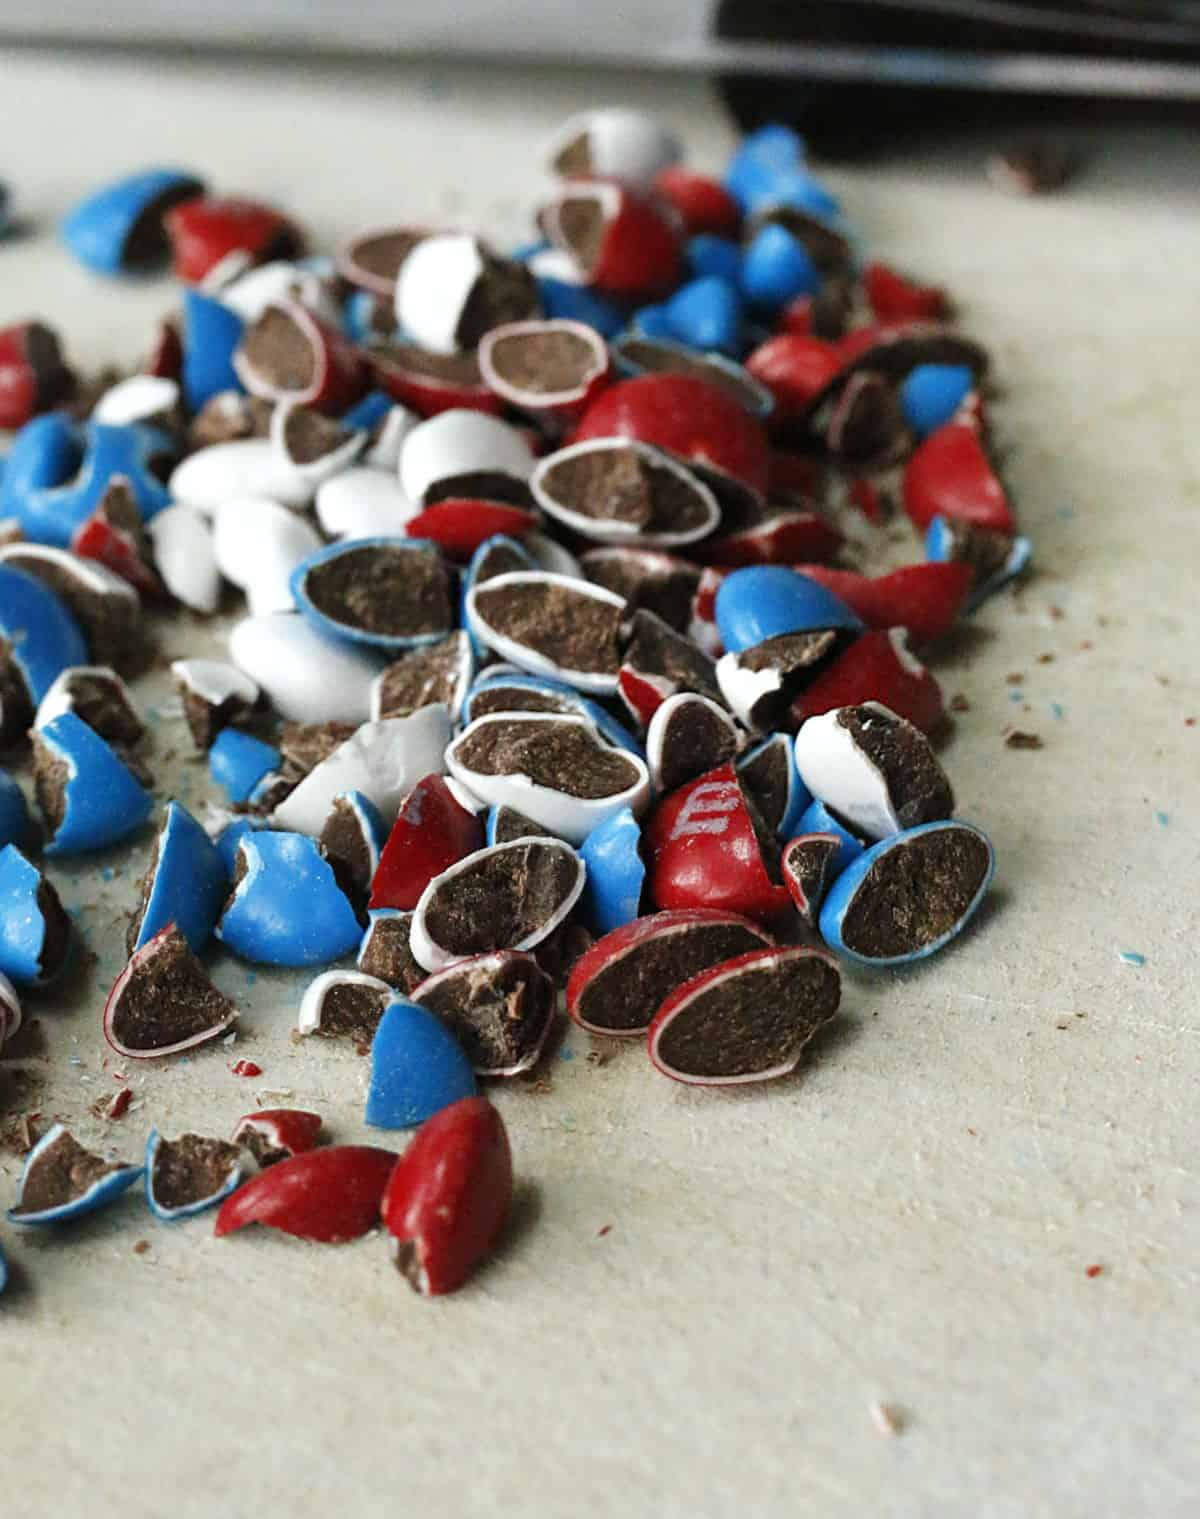 Chopped red, white and blue M & M's.